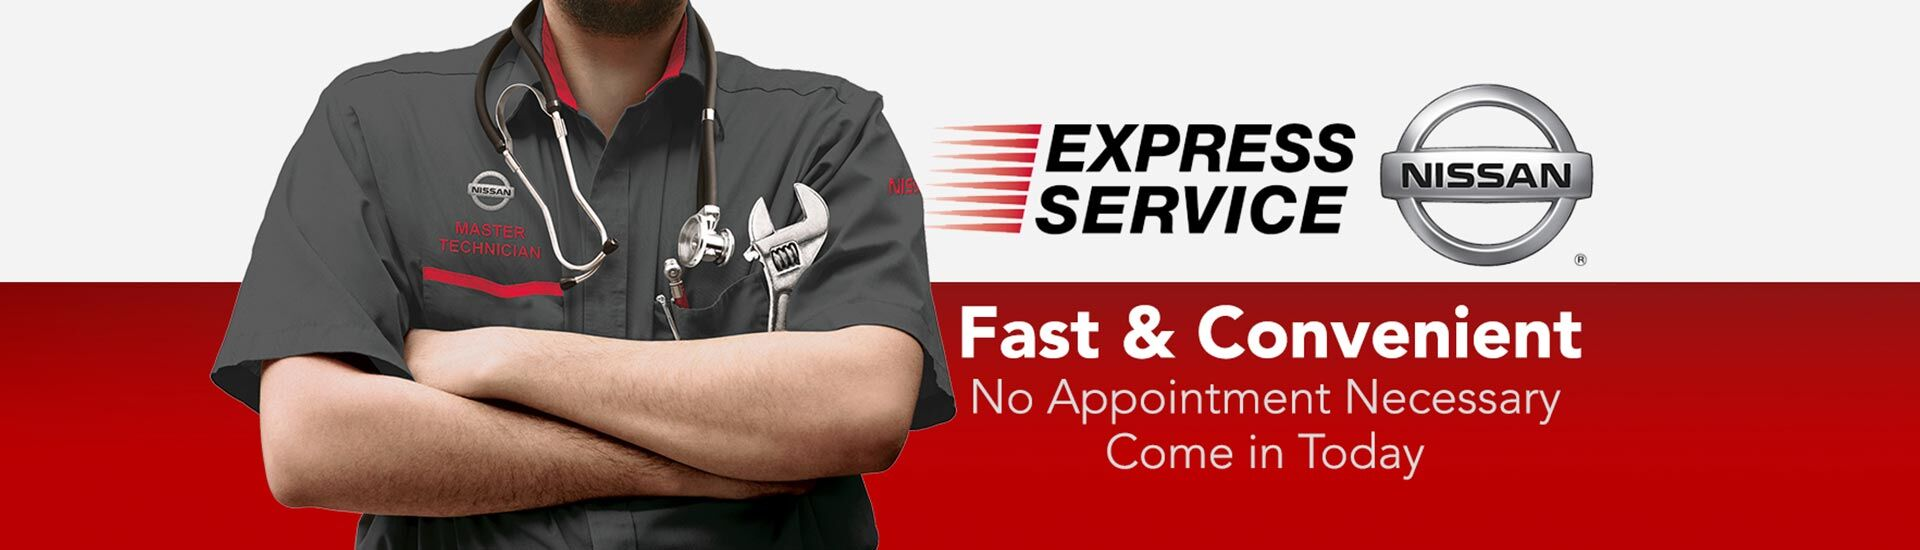 Express Service at Bert Ogden Nissan of McAllen